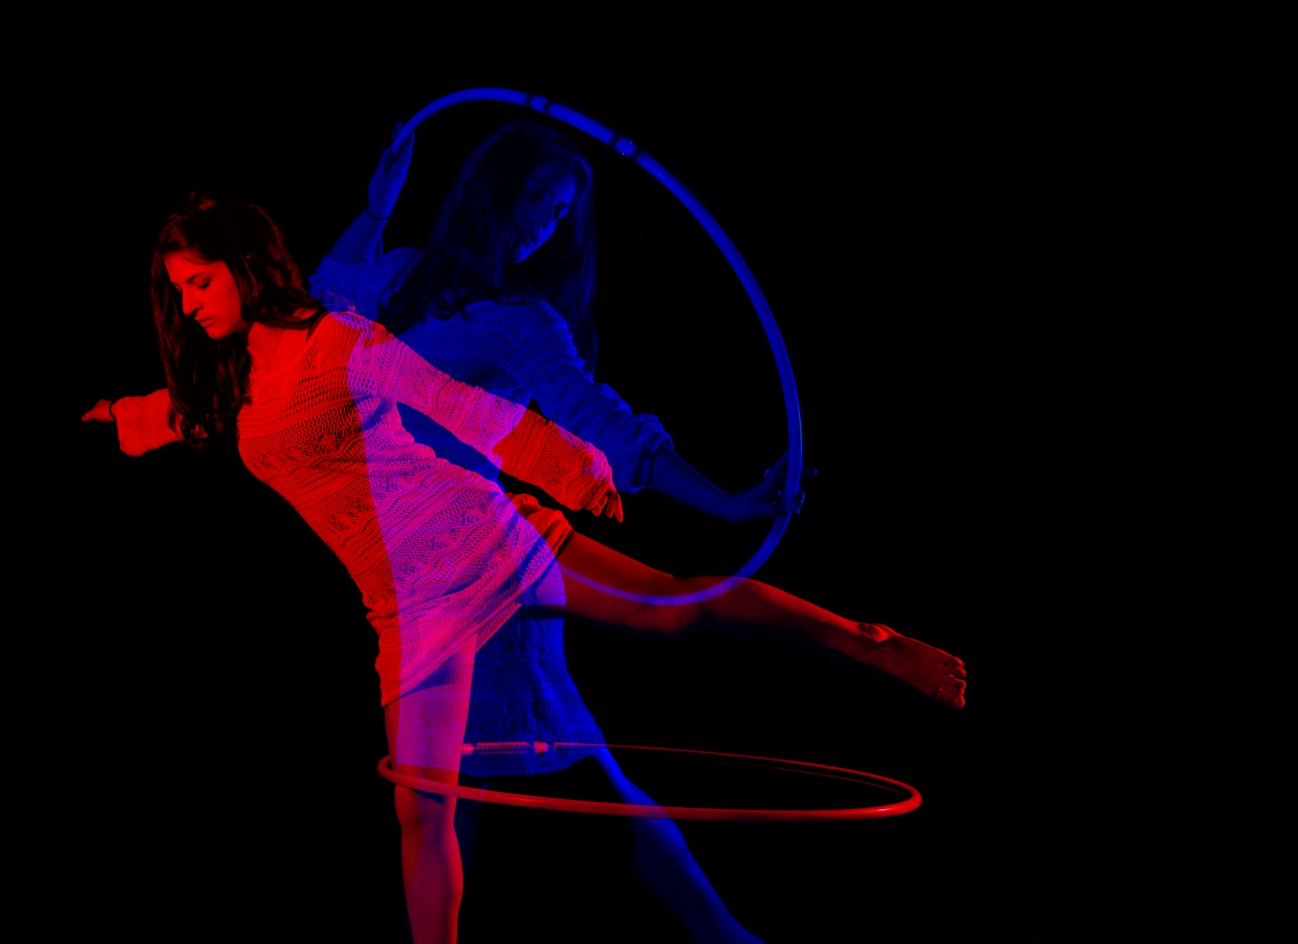 double exposure, hooping, red and blue